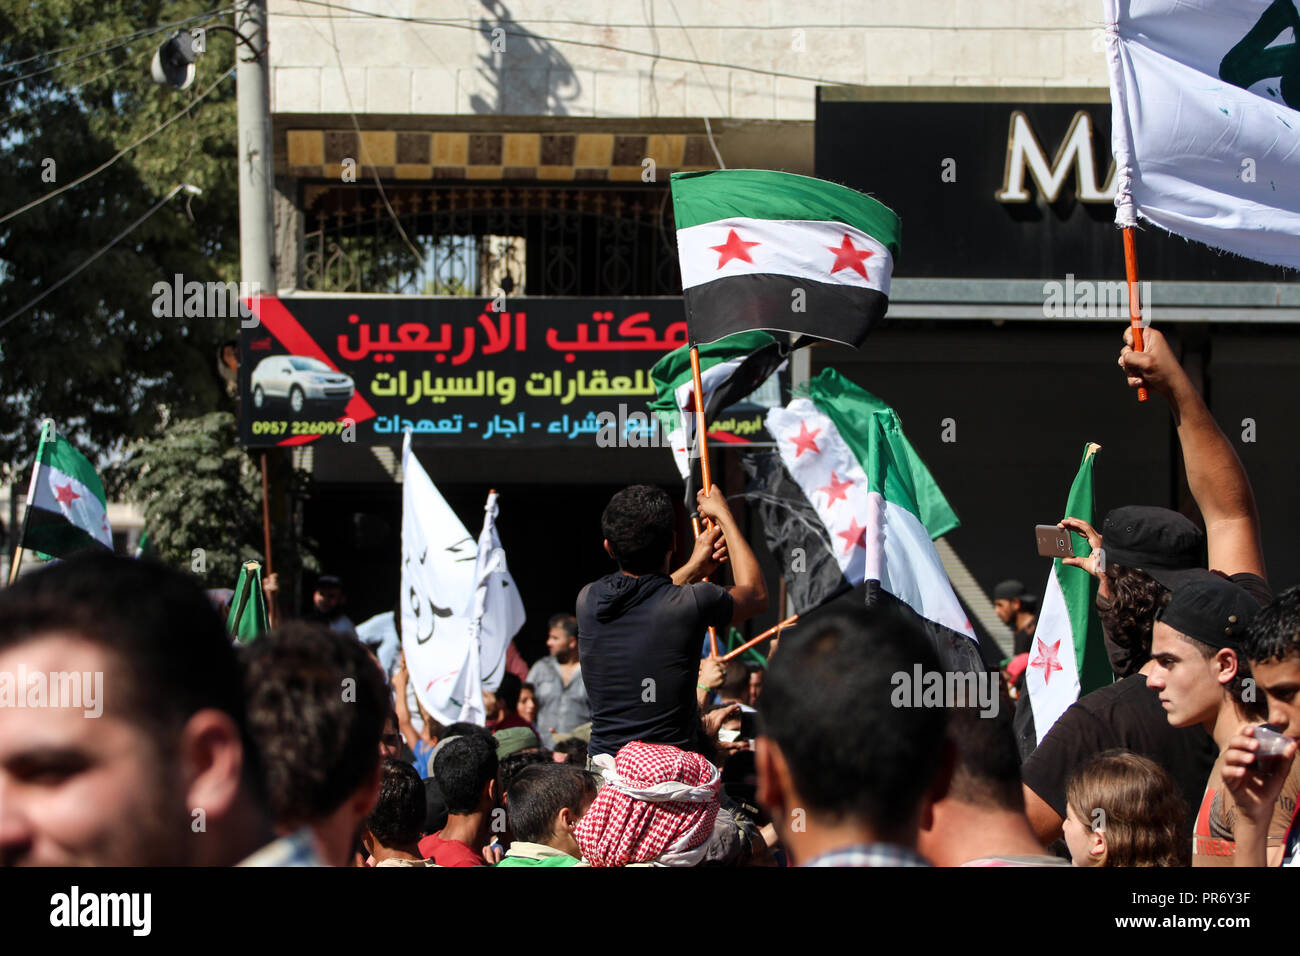 People seen with flags during a protest in the town of Eriha in Idlib calling for the release of detainees held by the Syrian regime. - Stock Image